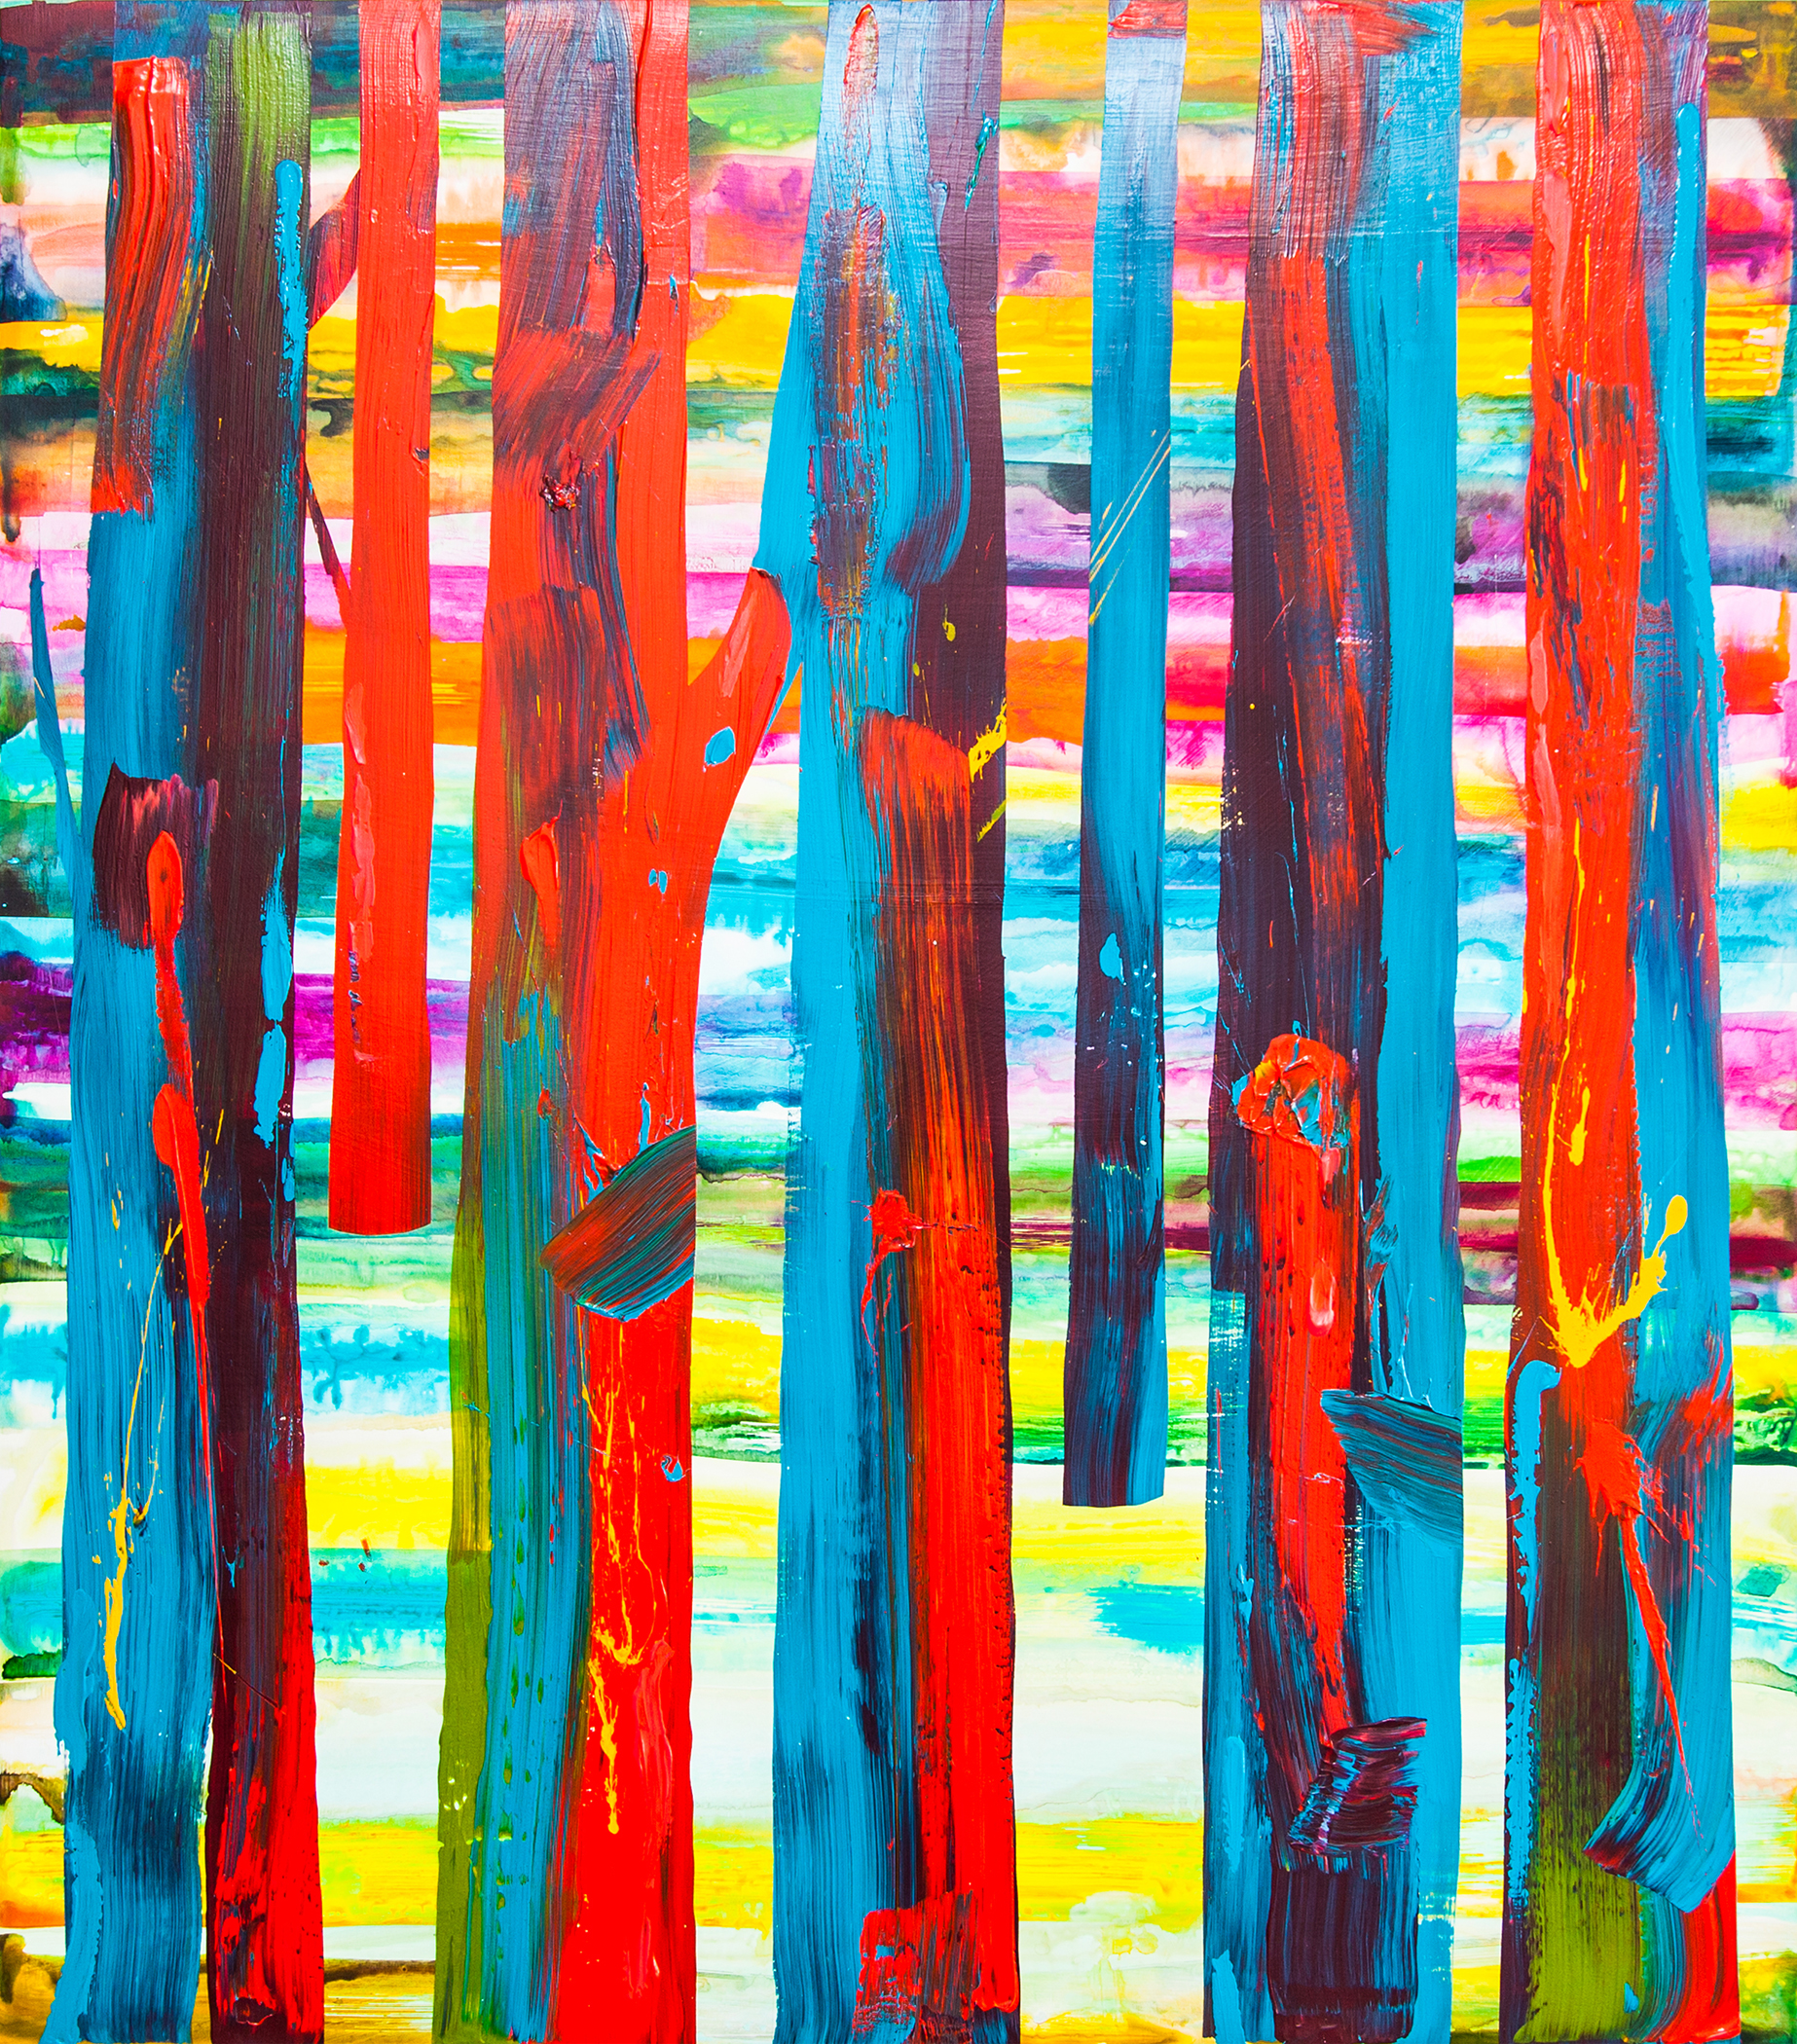 Abstract Trees No.1_42 x 48 inches_2017